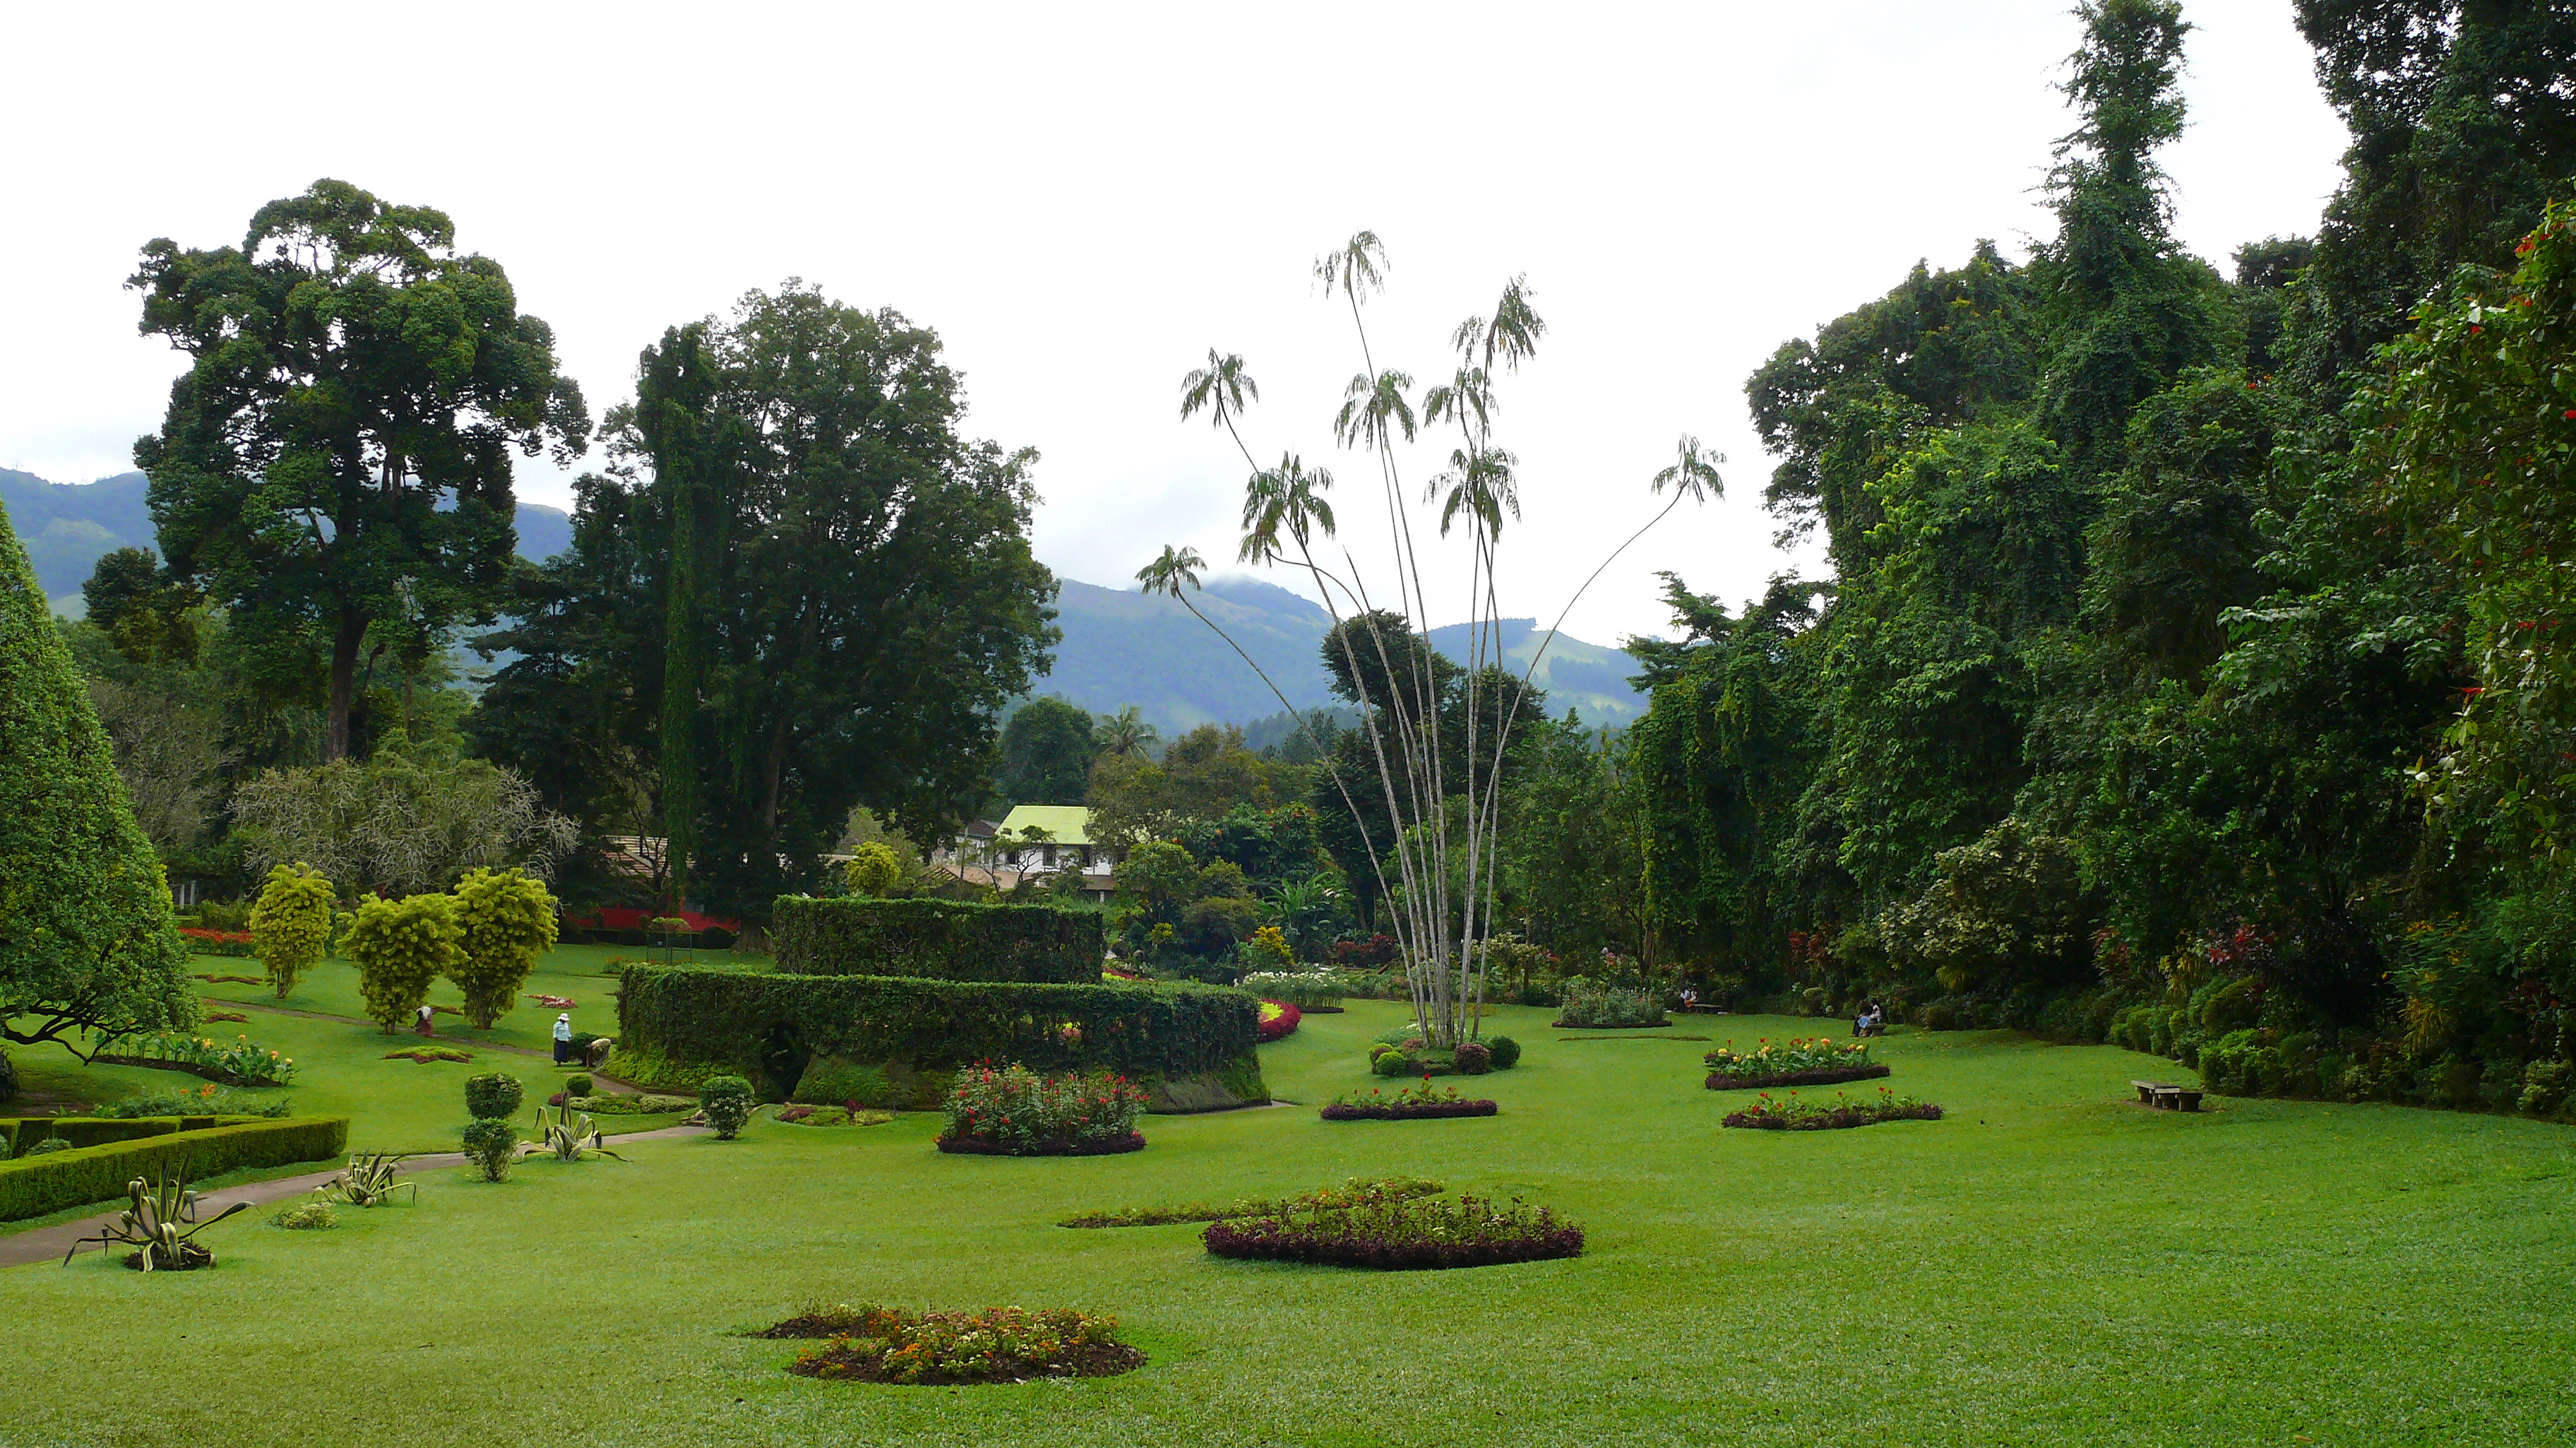 Boutique Sri Lanka - Royal Botanical Garden, Peradeniya, Sri Lanka